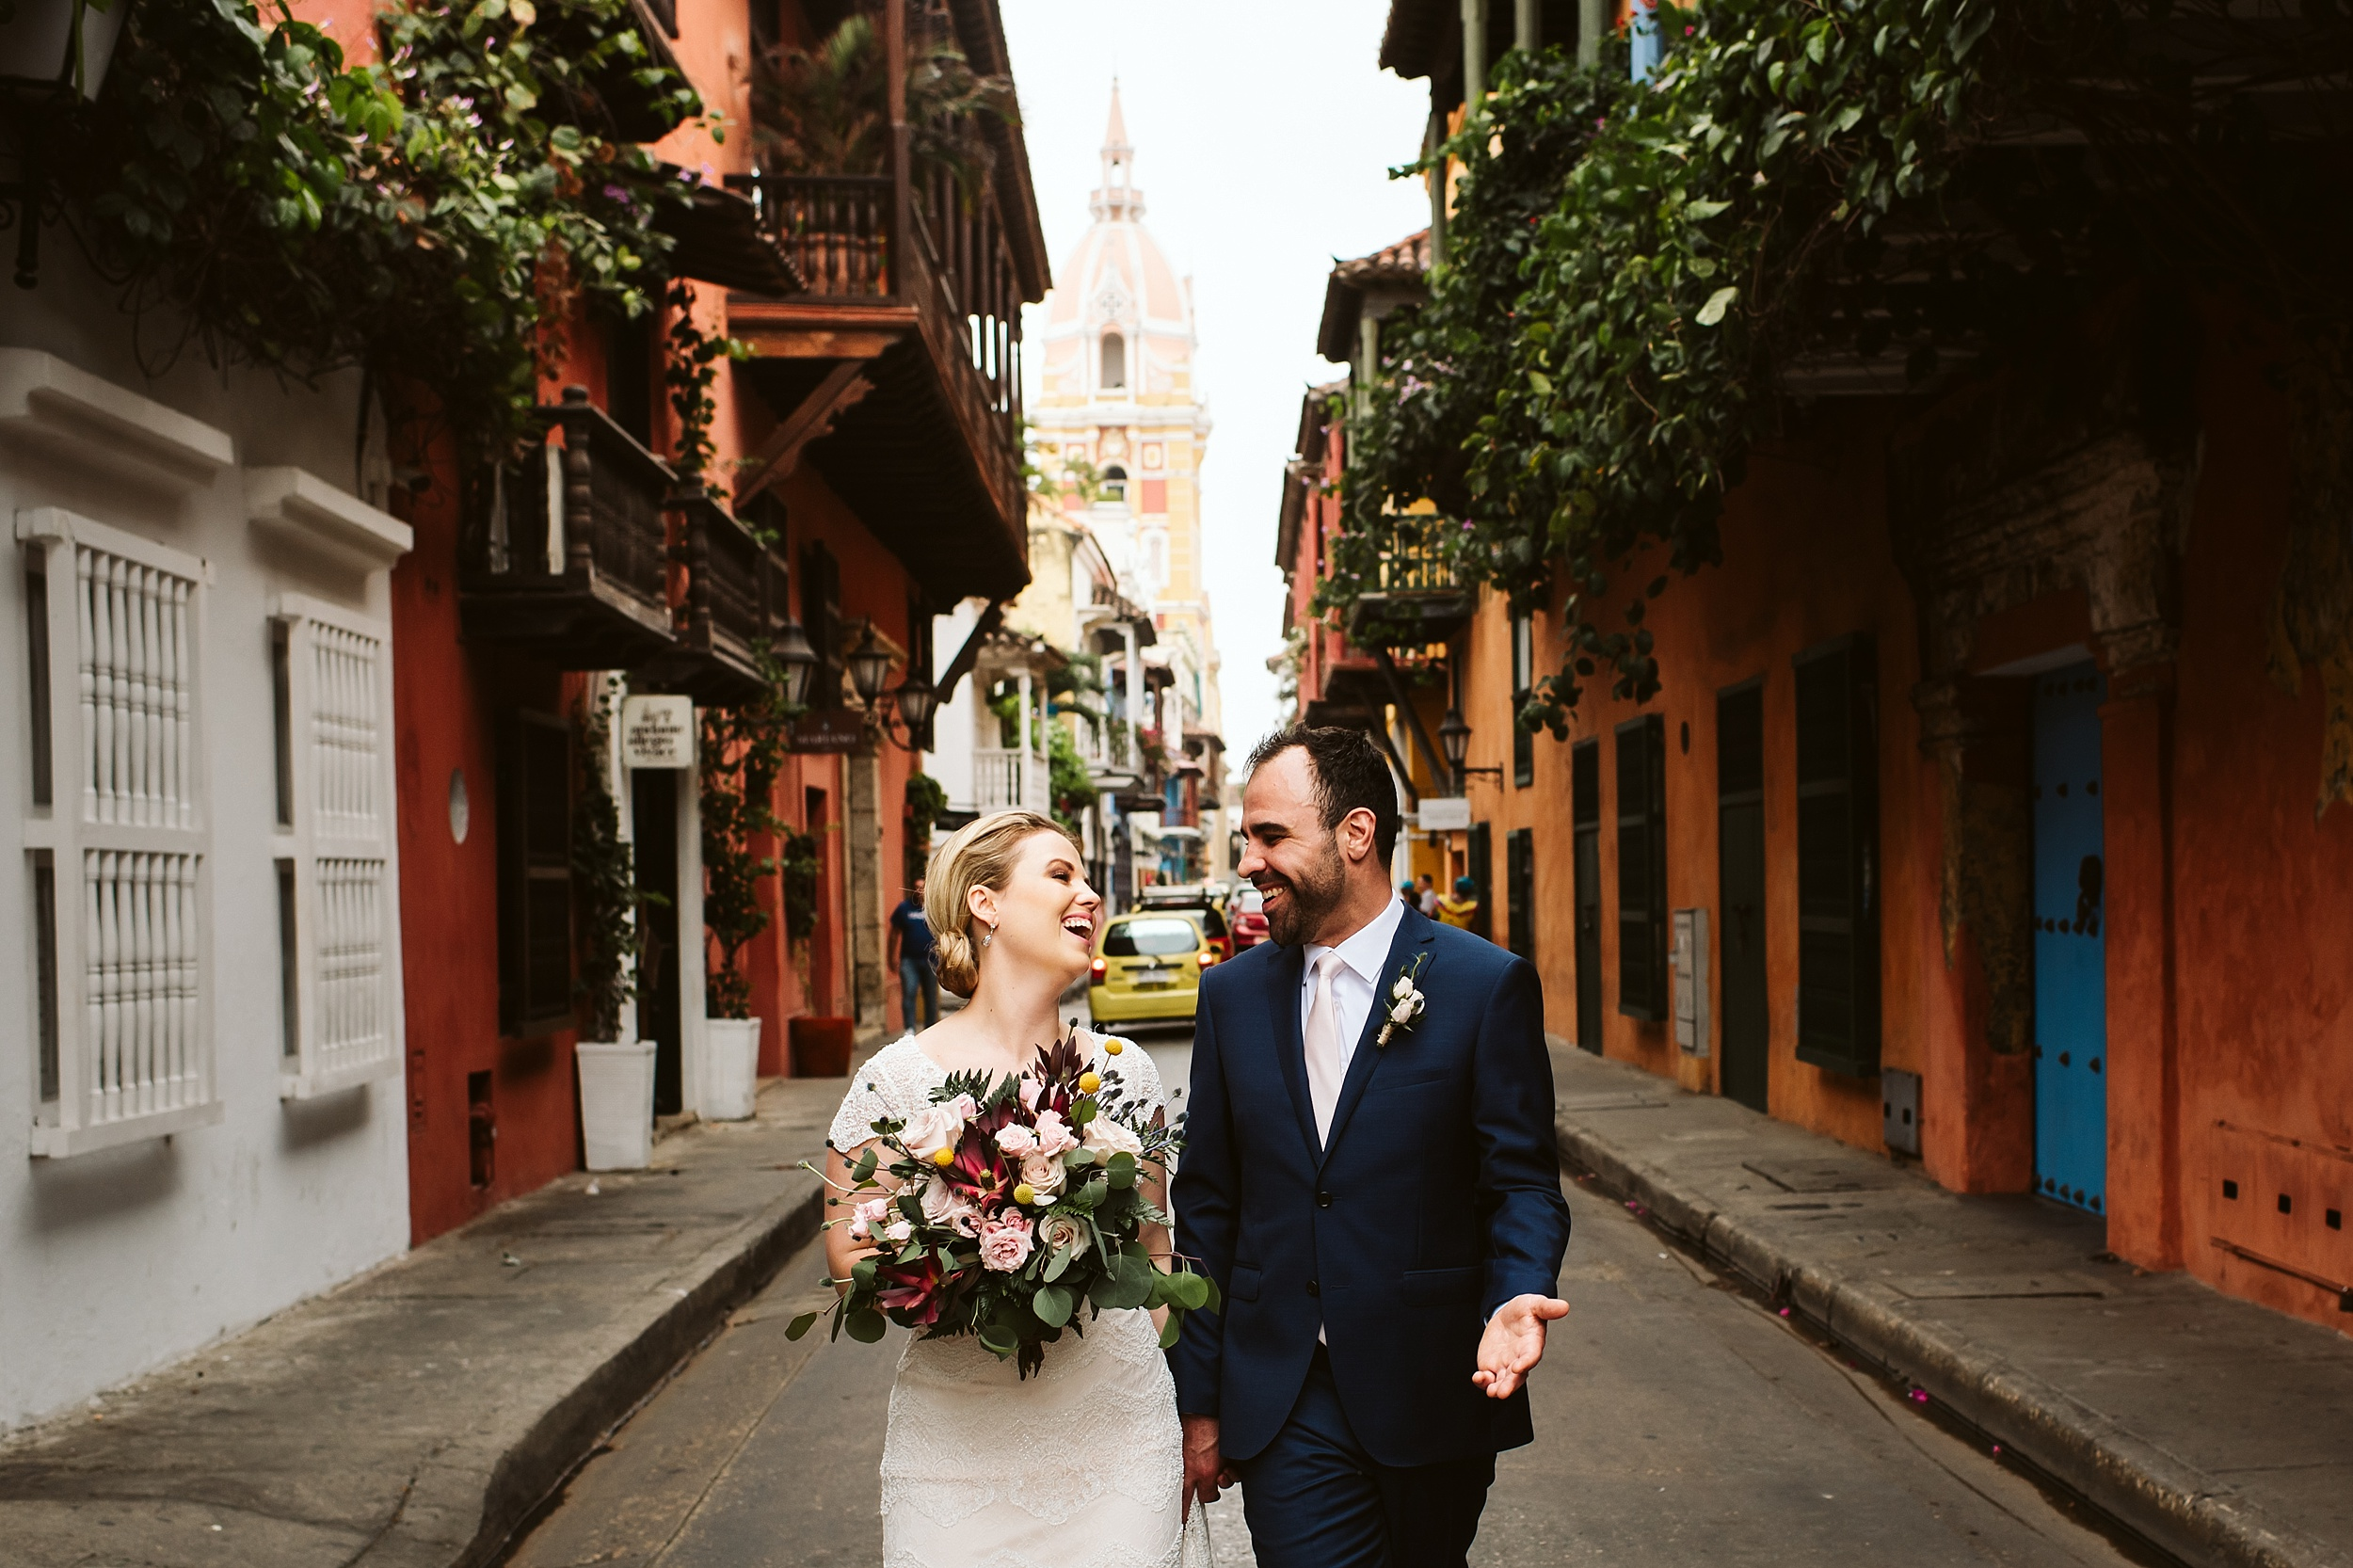 Sarah & Scott - Destination Wedding Colombia